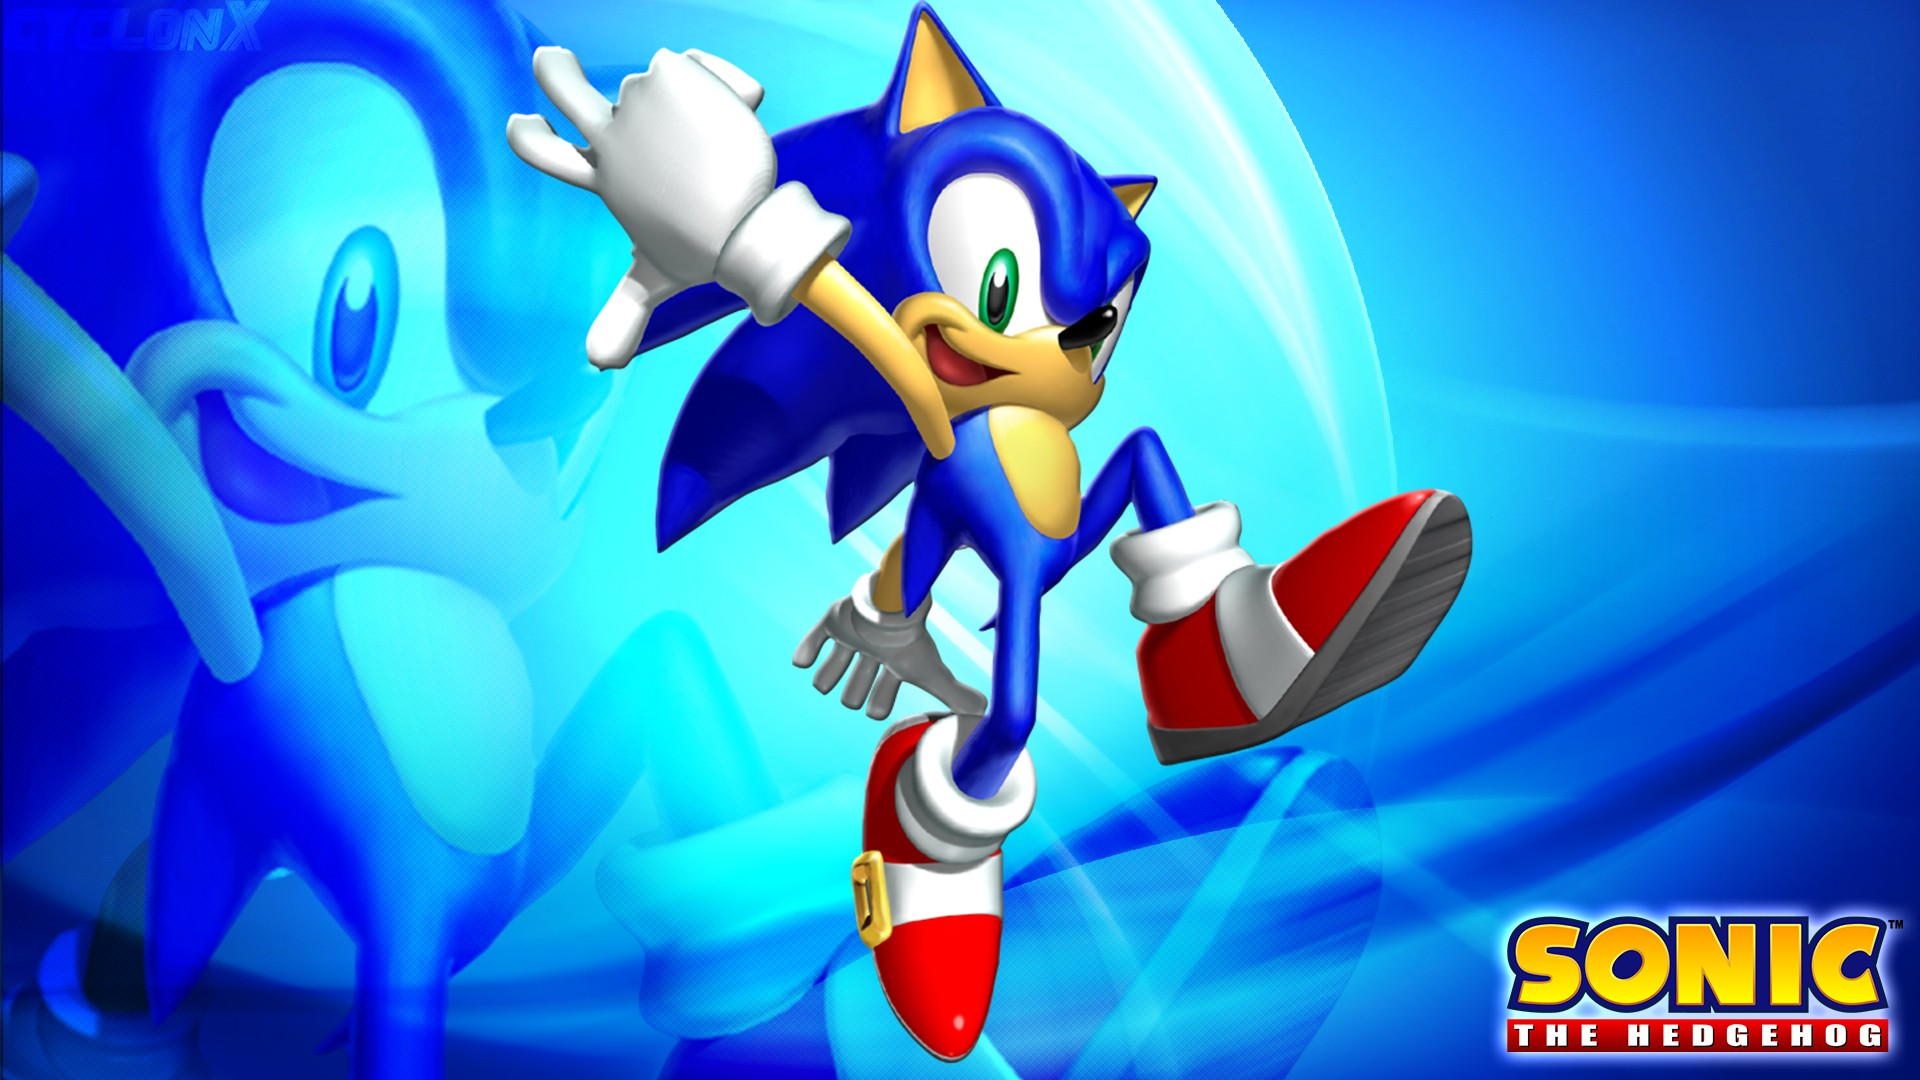 M: Sonic the Hedgehog: Unknown: Video Games Photos of sonic the hedgehog